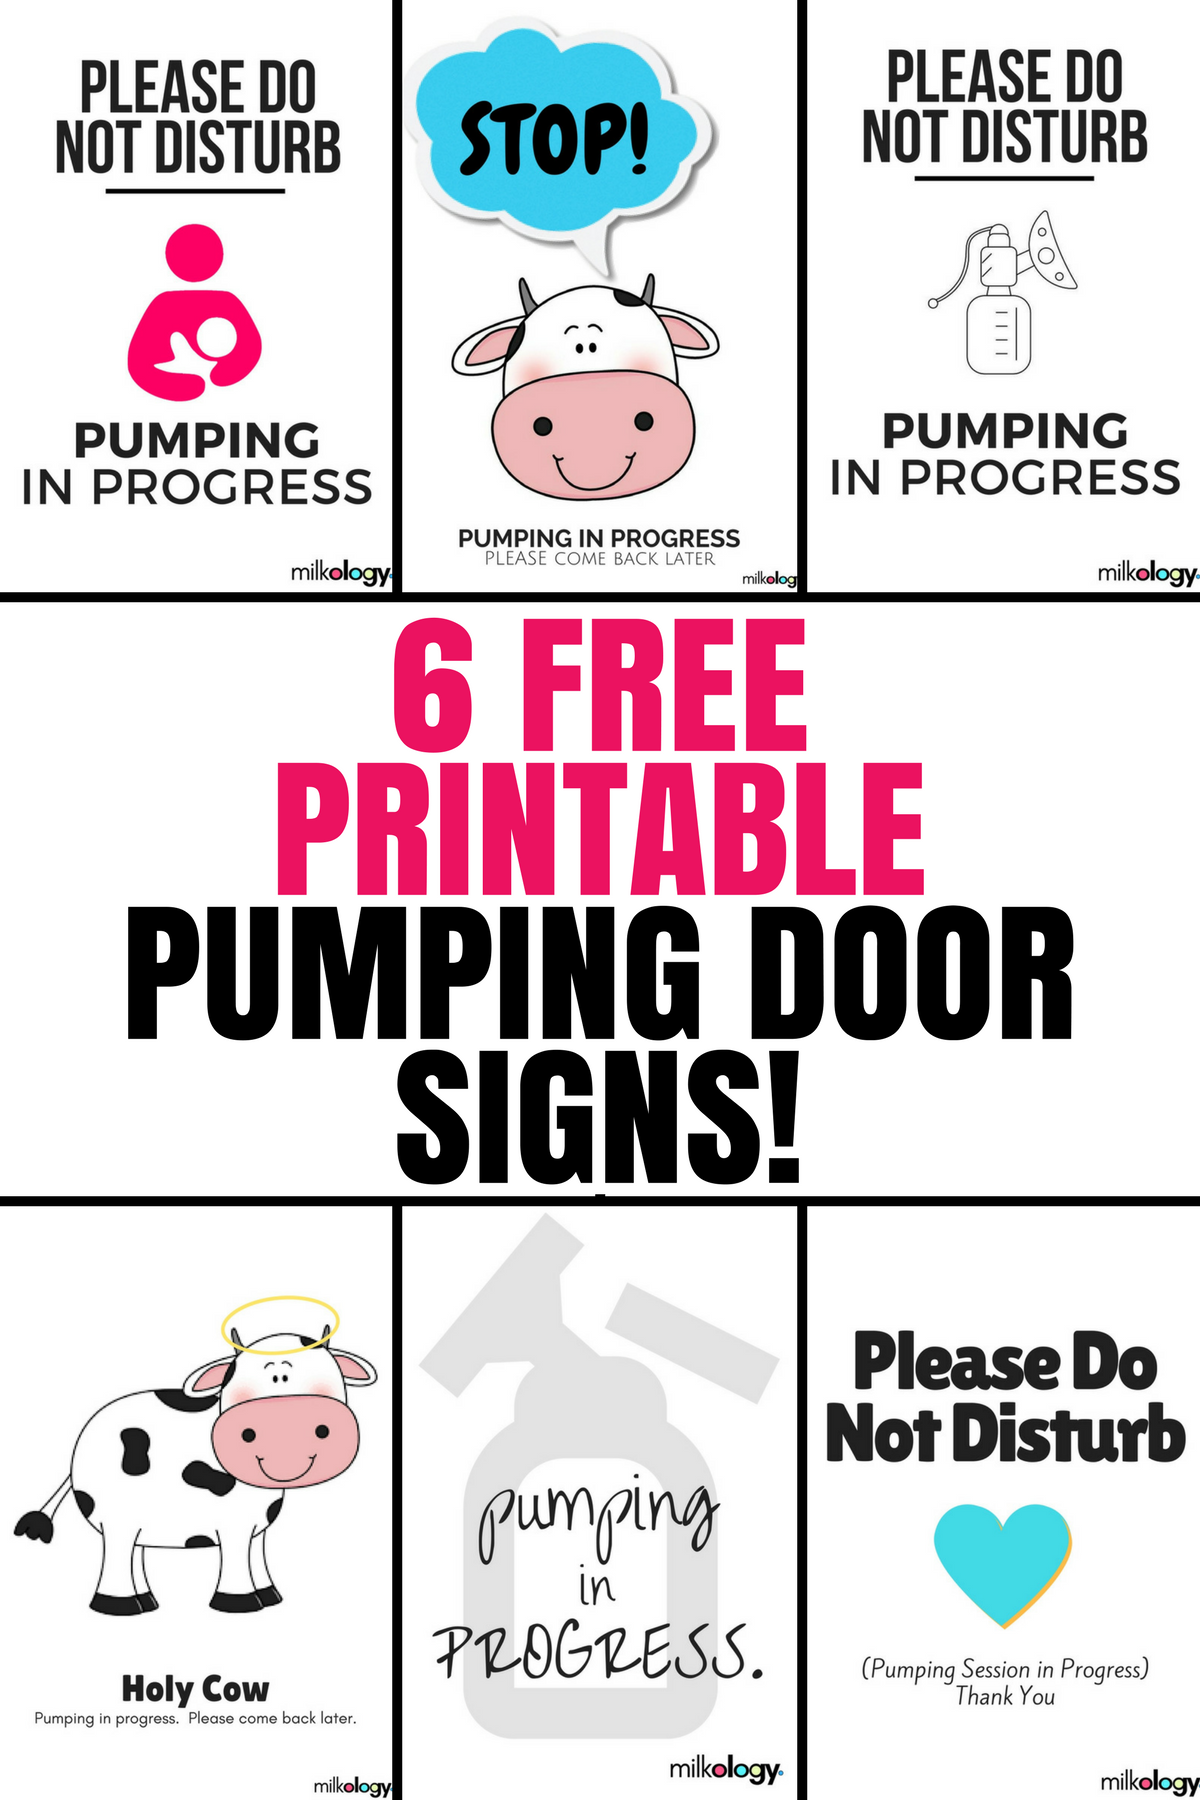 image regarding Free Printable Door Signs referred to as Free of charge printable pumping doorway indications for breastfeeding and